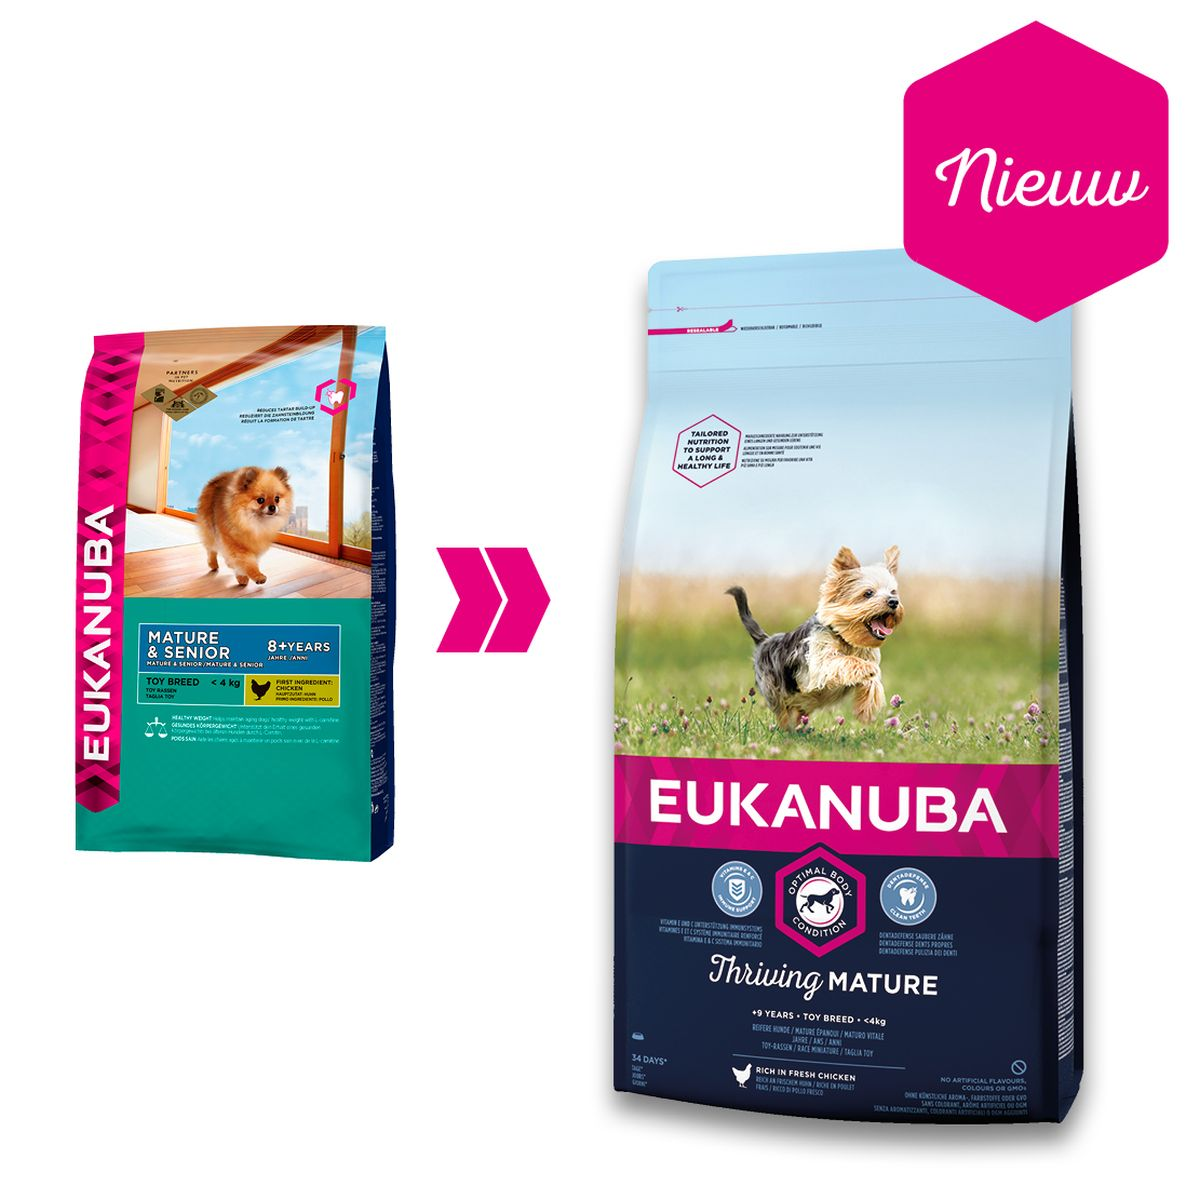 Eukanuba Thriving Mature Toy Breed Kip 2 kg Hondenvoer